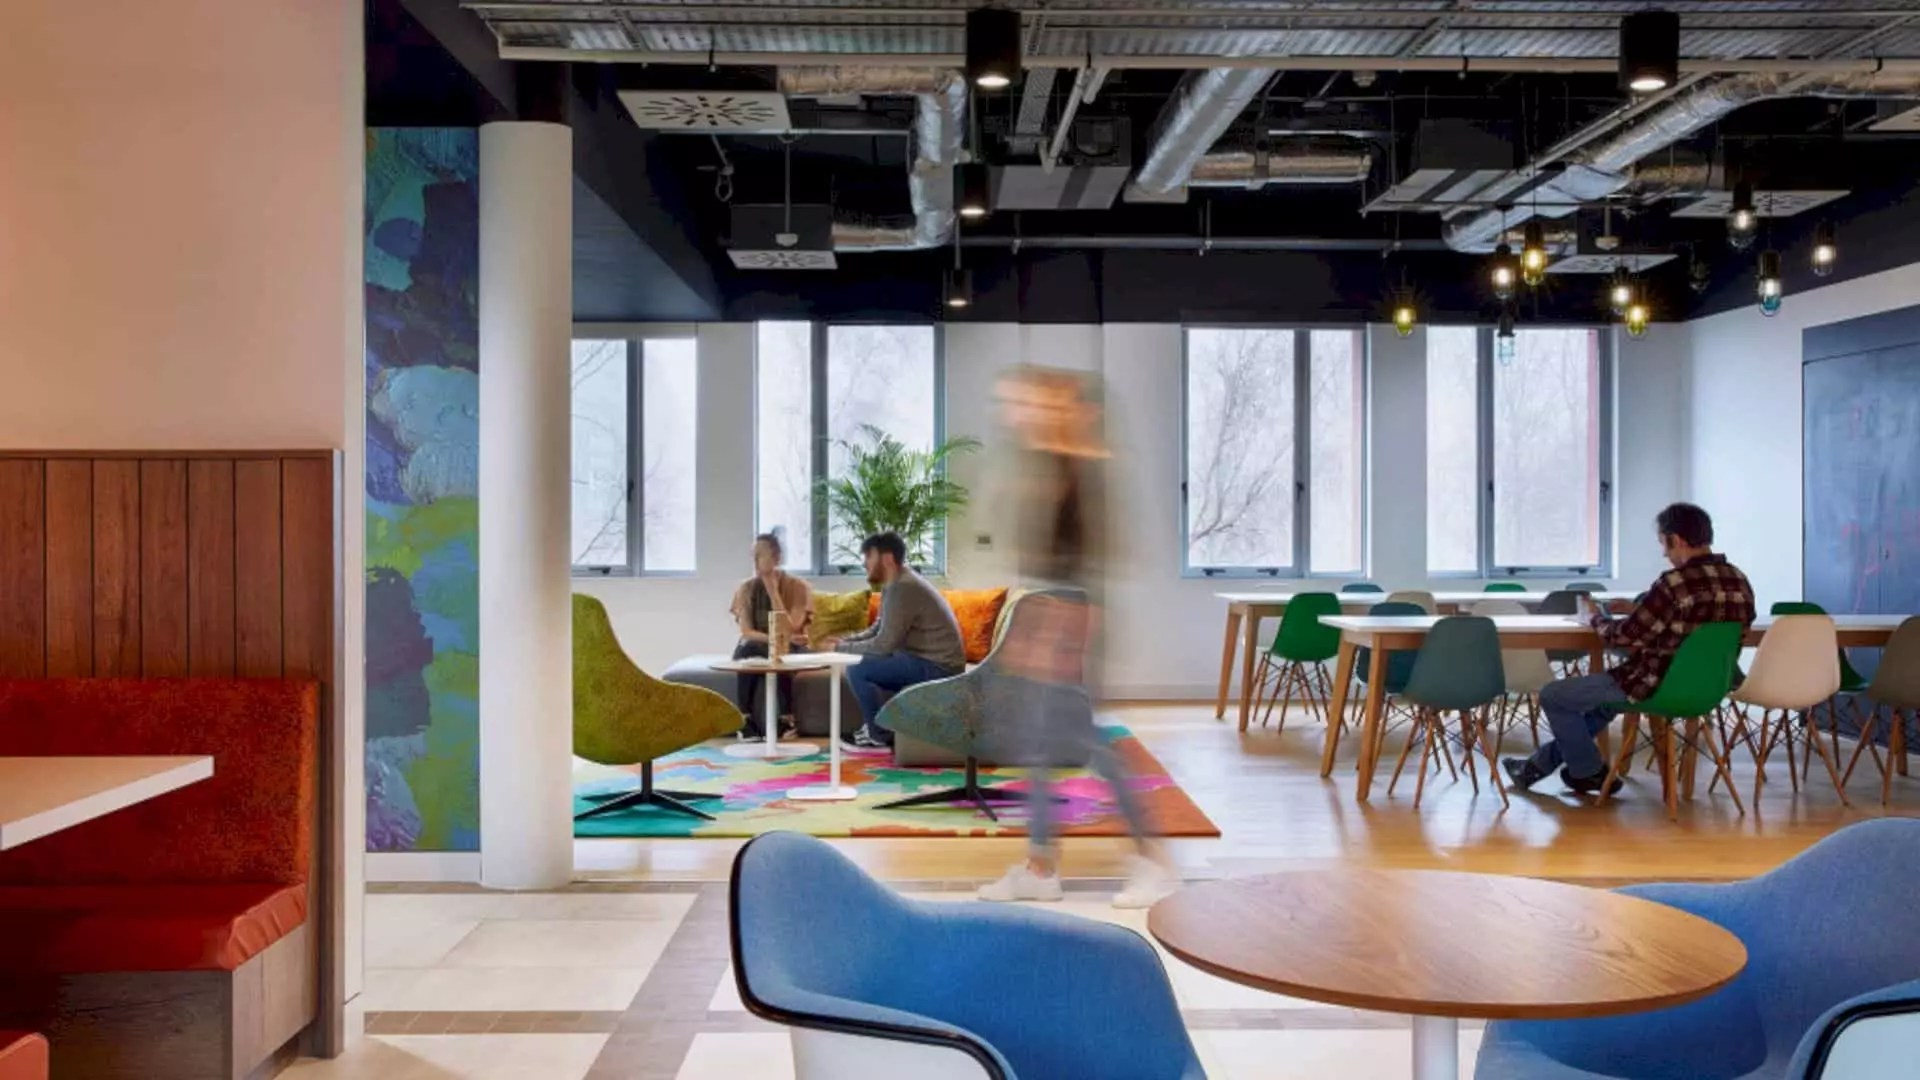 Adobe London: Industrial Interior of Three-Floors Building with Colorful Palette